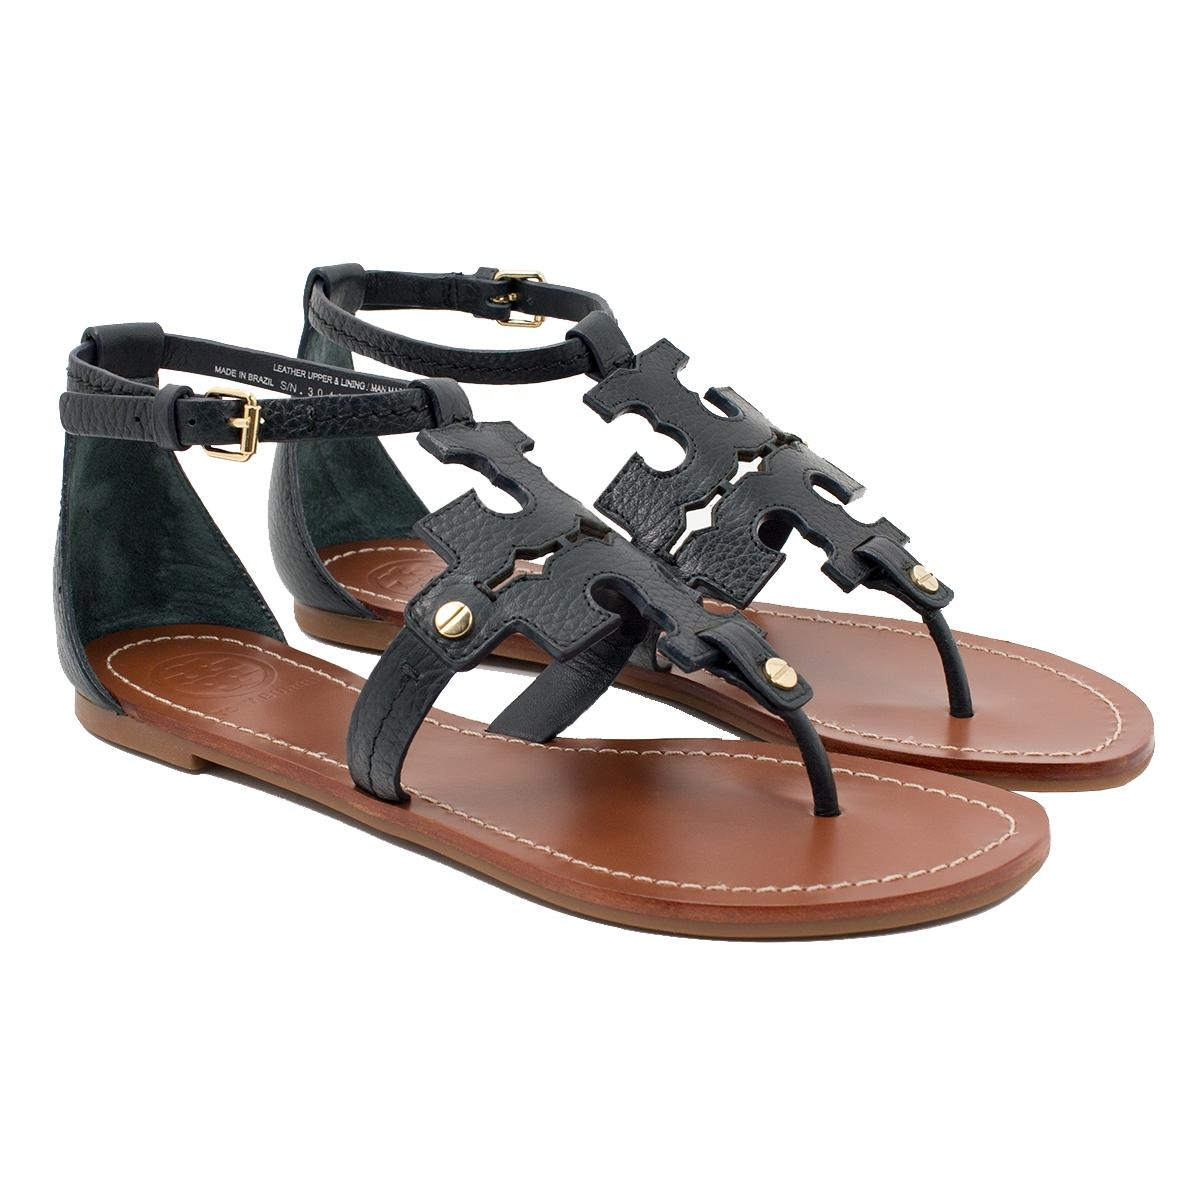 4b9cc1c58 ... switzerland tory burch phoebe flat thong tory navy sandals 67e14 f5ca4  ...